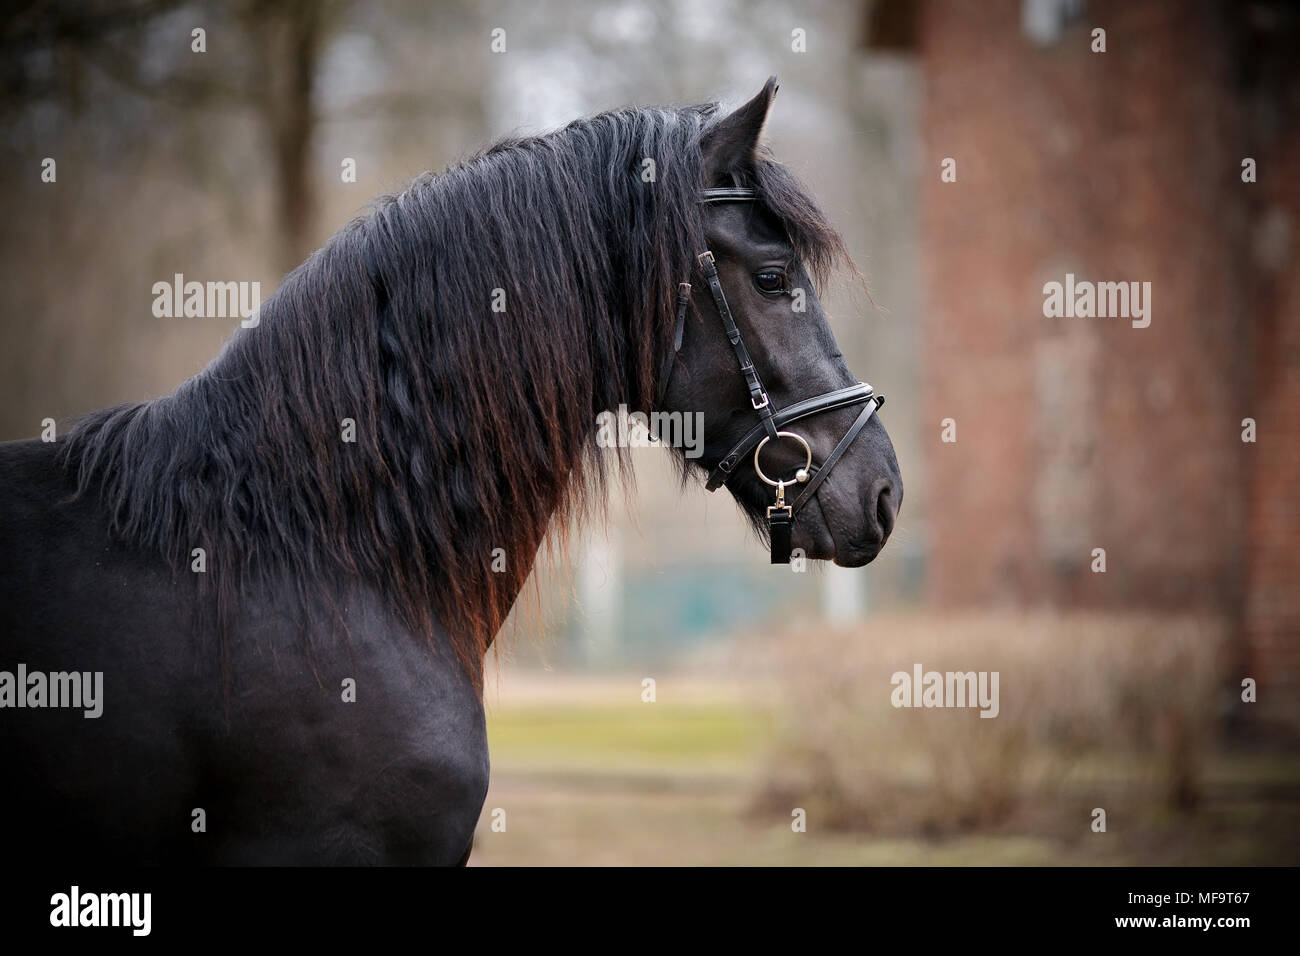 Black Stallion Portrait Of A Sports Black Horse Thoroughbred Horse Beautiful Horse Stock Photo Alamy